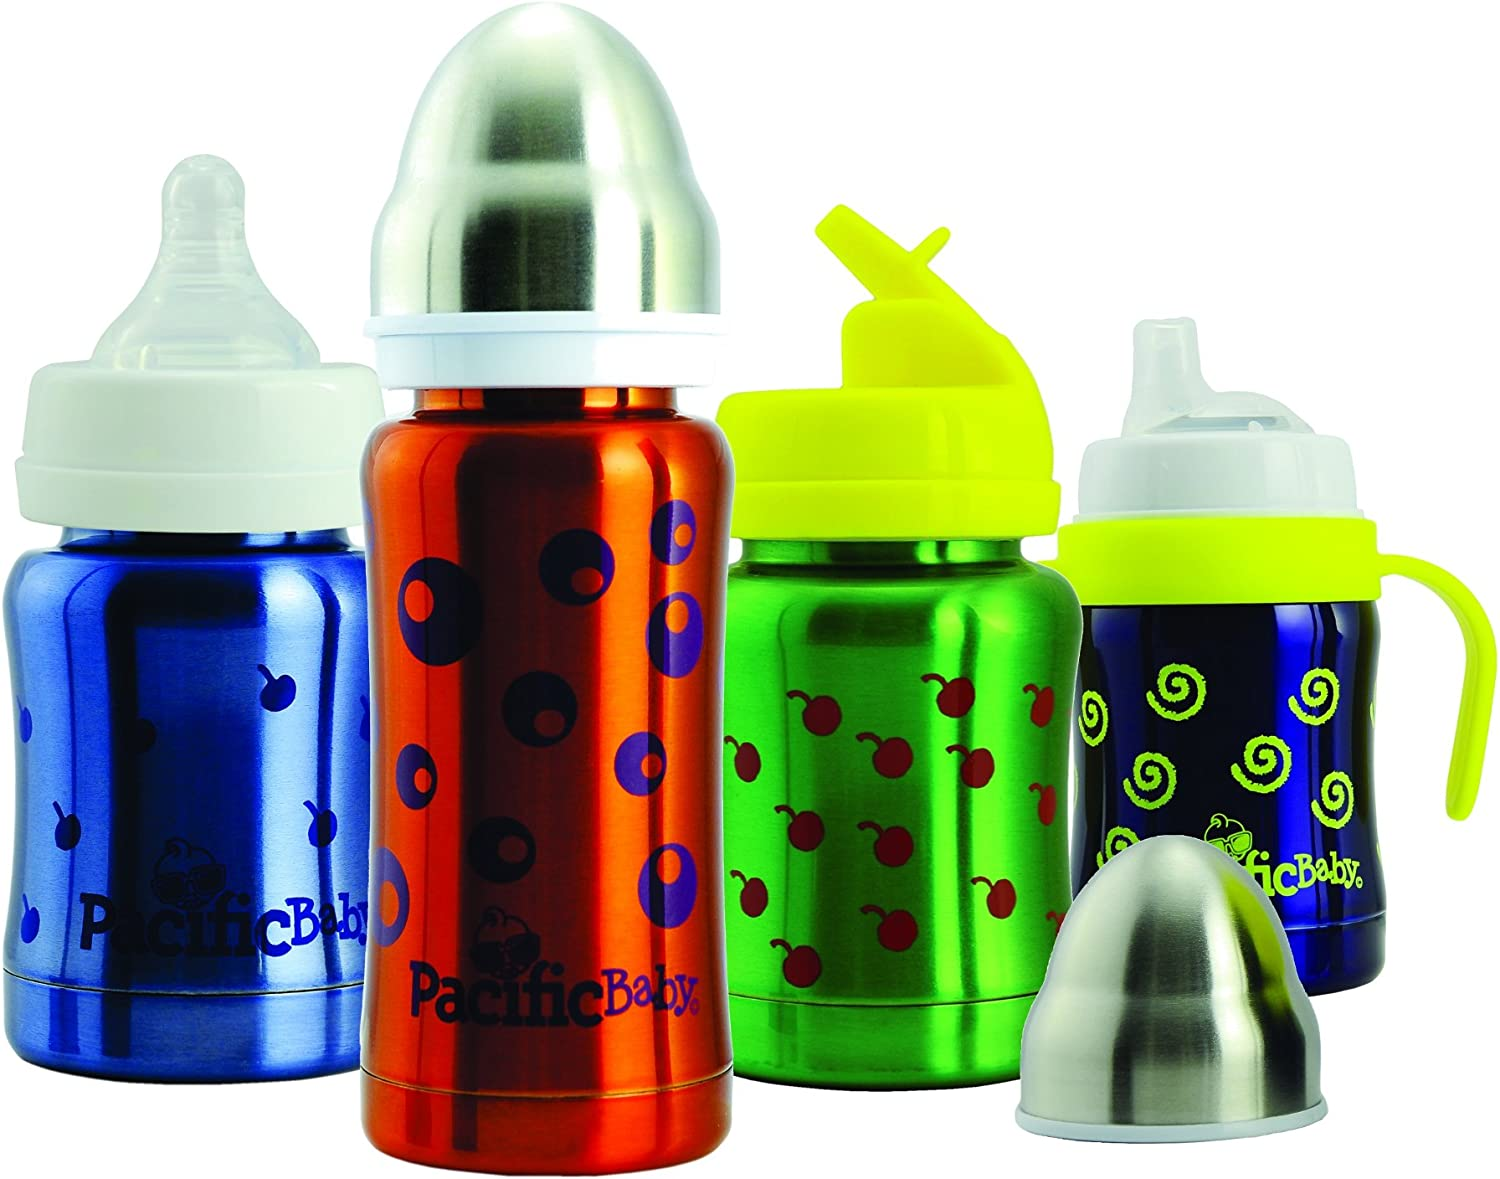 Bubbles Pacific Baby 7ounce 3-in-One Thermal Baby Bottle